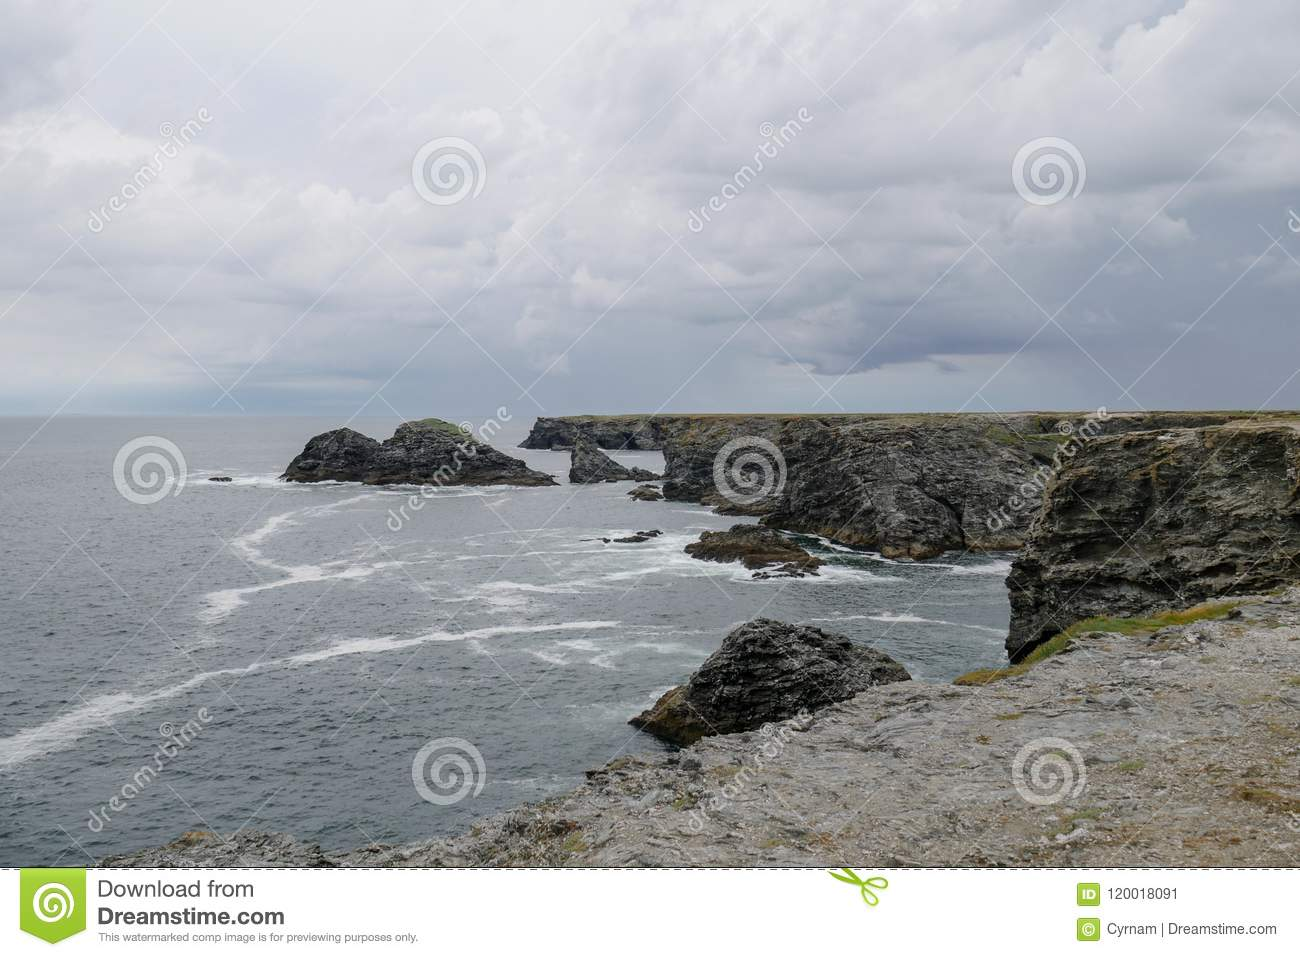 Typical brittany coastline with grey cloudy sky and immensity of atlantic ocean